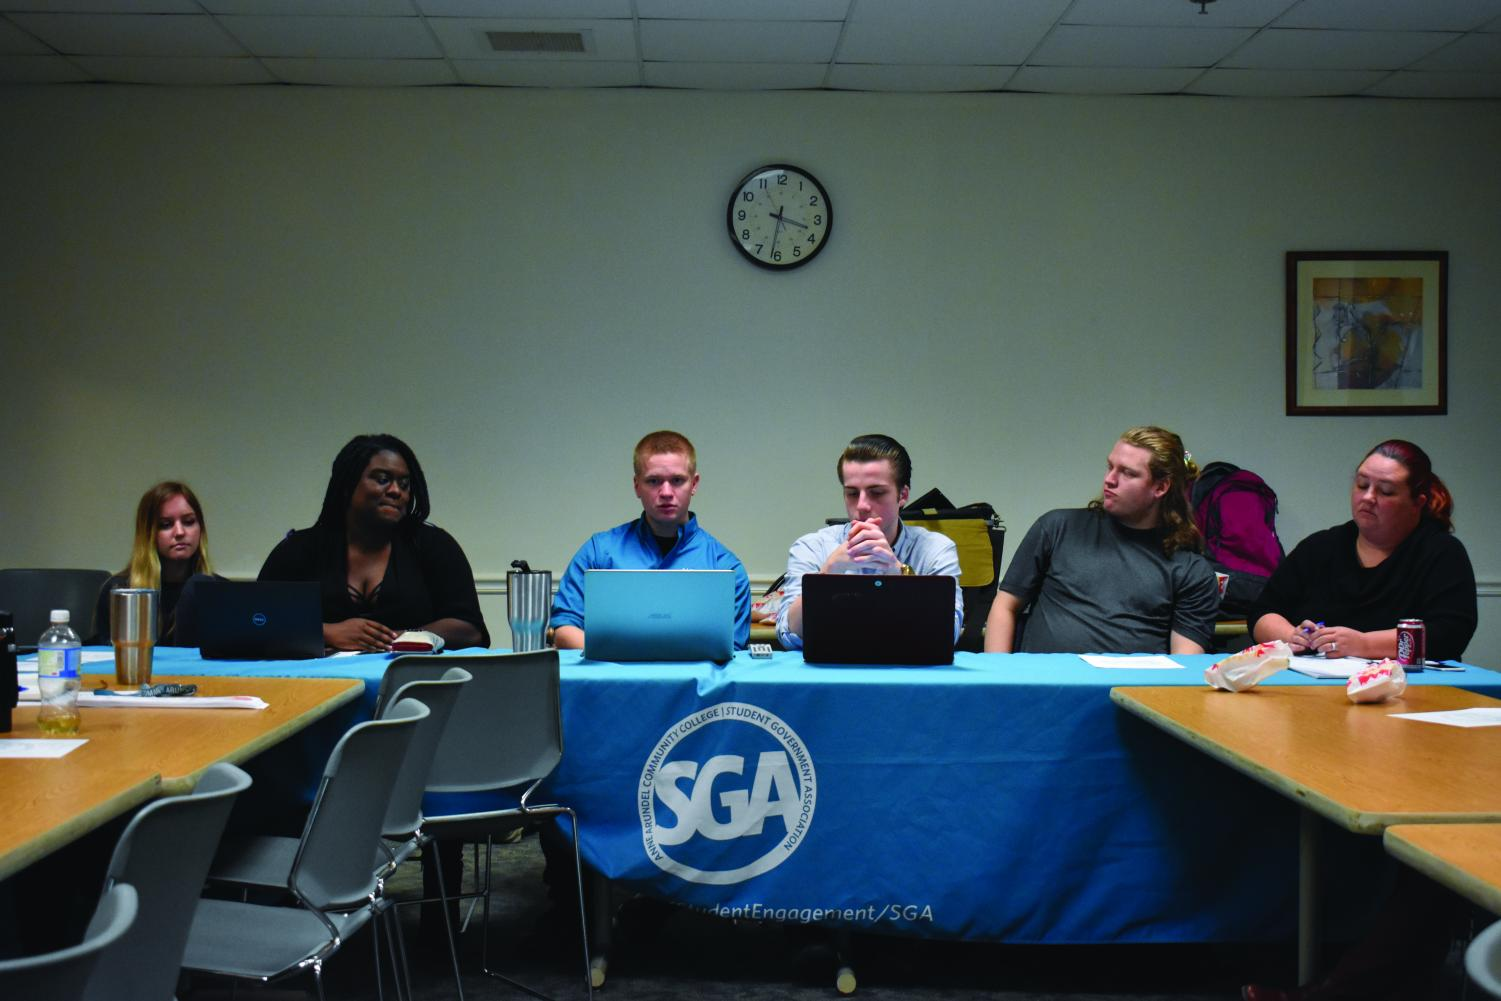 The Student Government Association is suggesting that its Advisory Council meet fewer times throughout the semester. SGA President Jacob Smith made the suggestion because of a lack of attendance from club members.